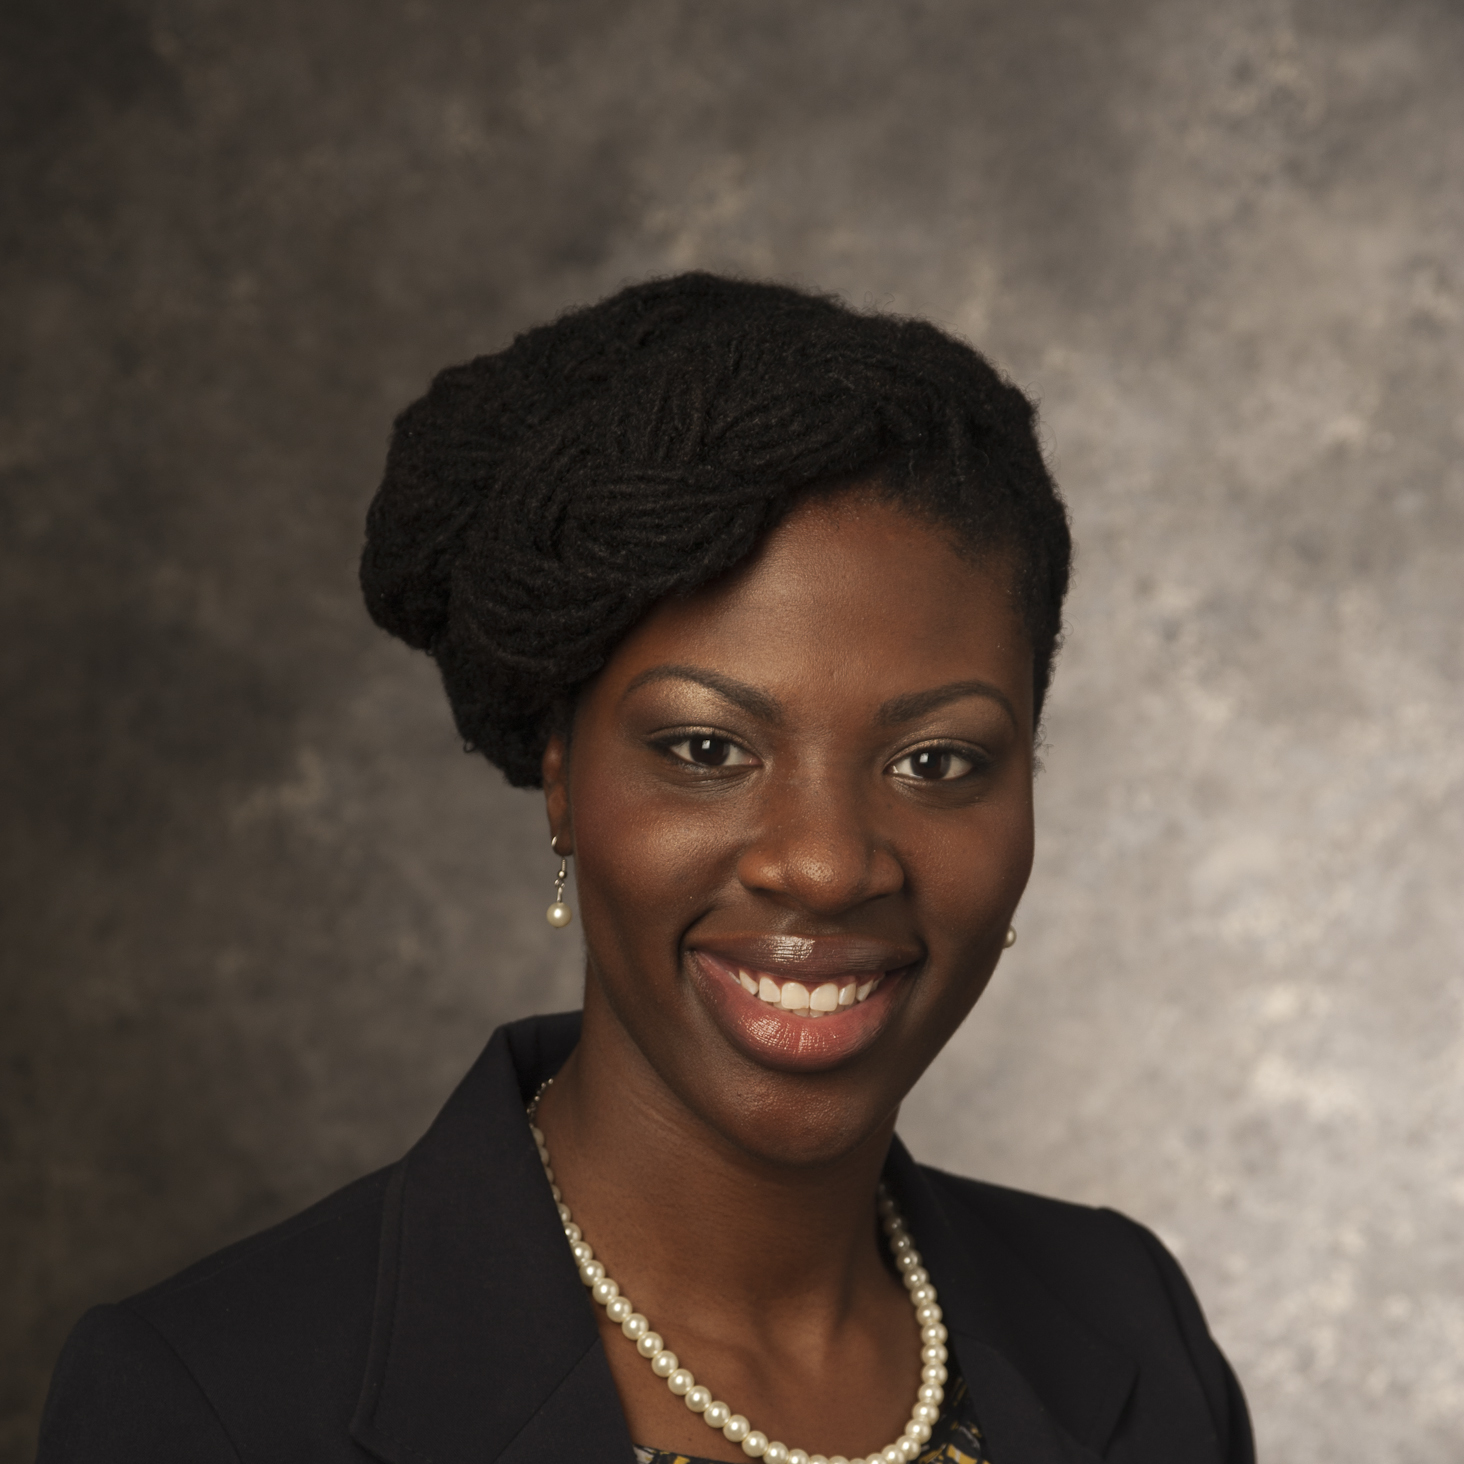 Dr. Yetunde Zannou, Postdoctoral Research Fellow, SMU